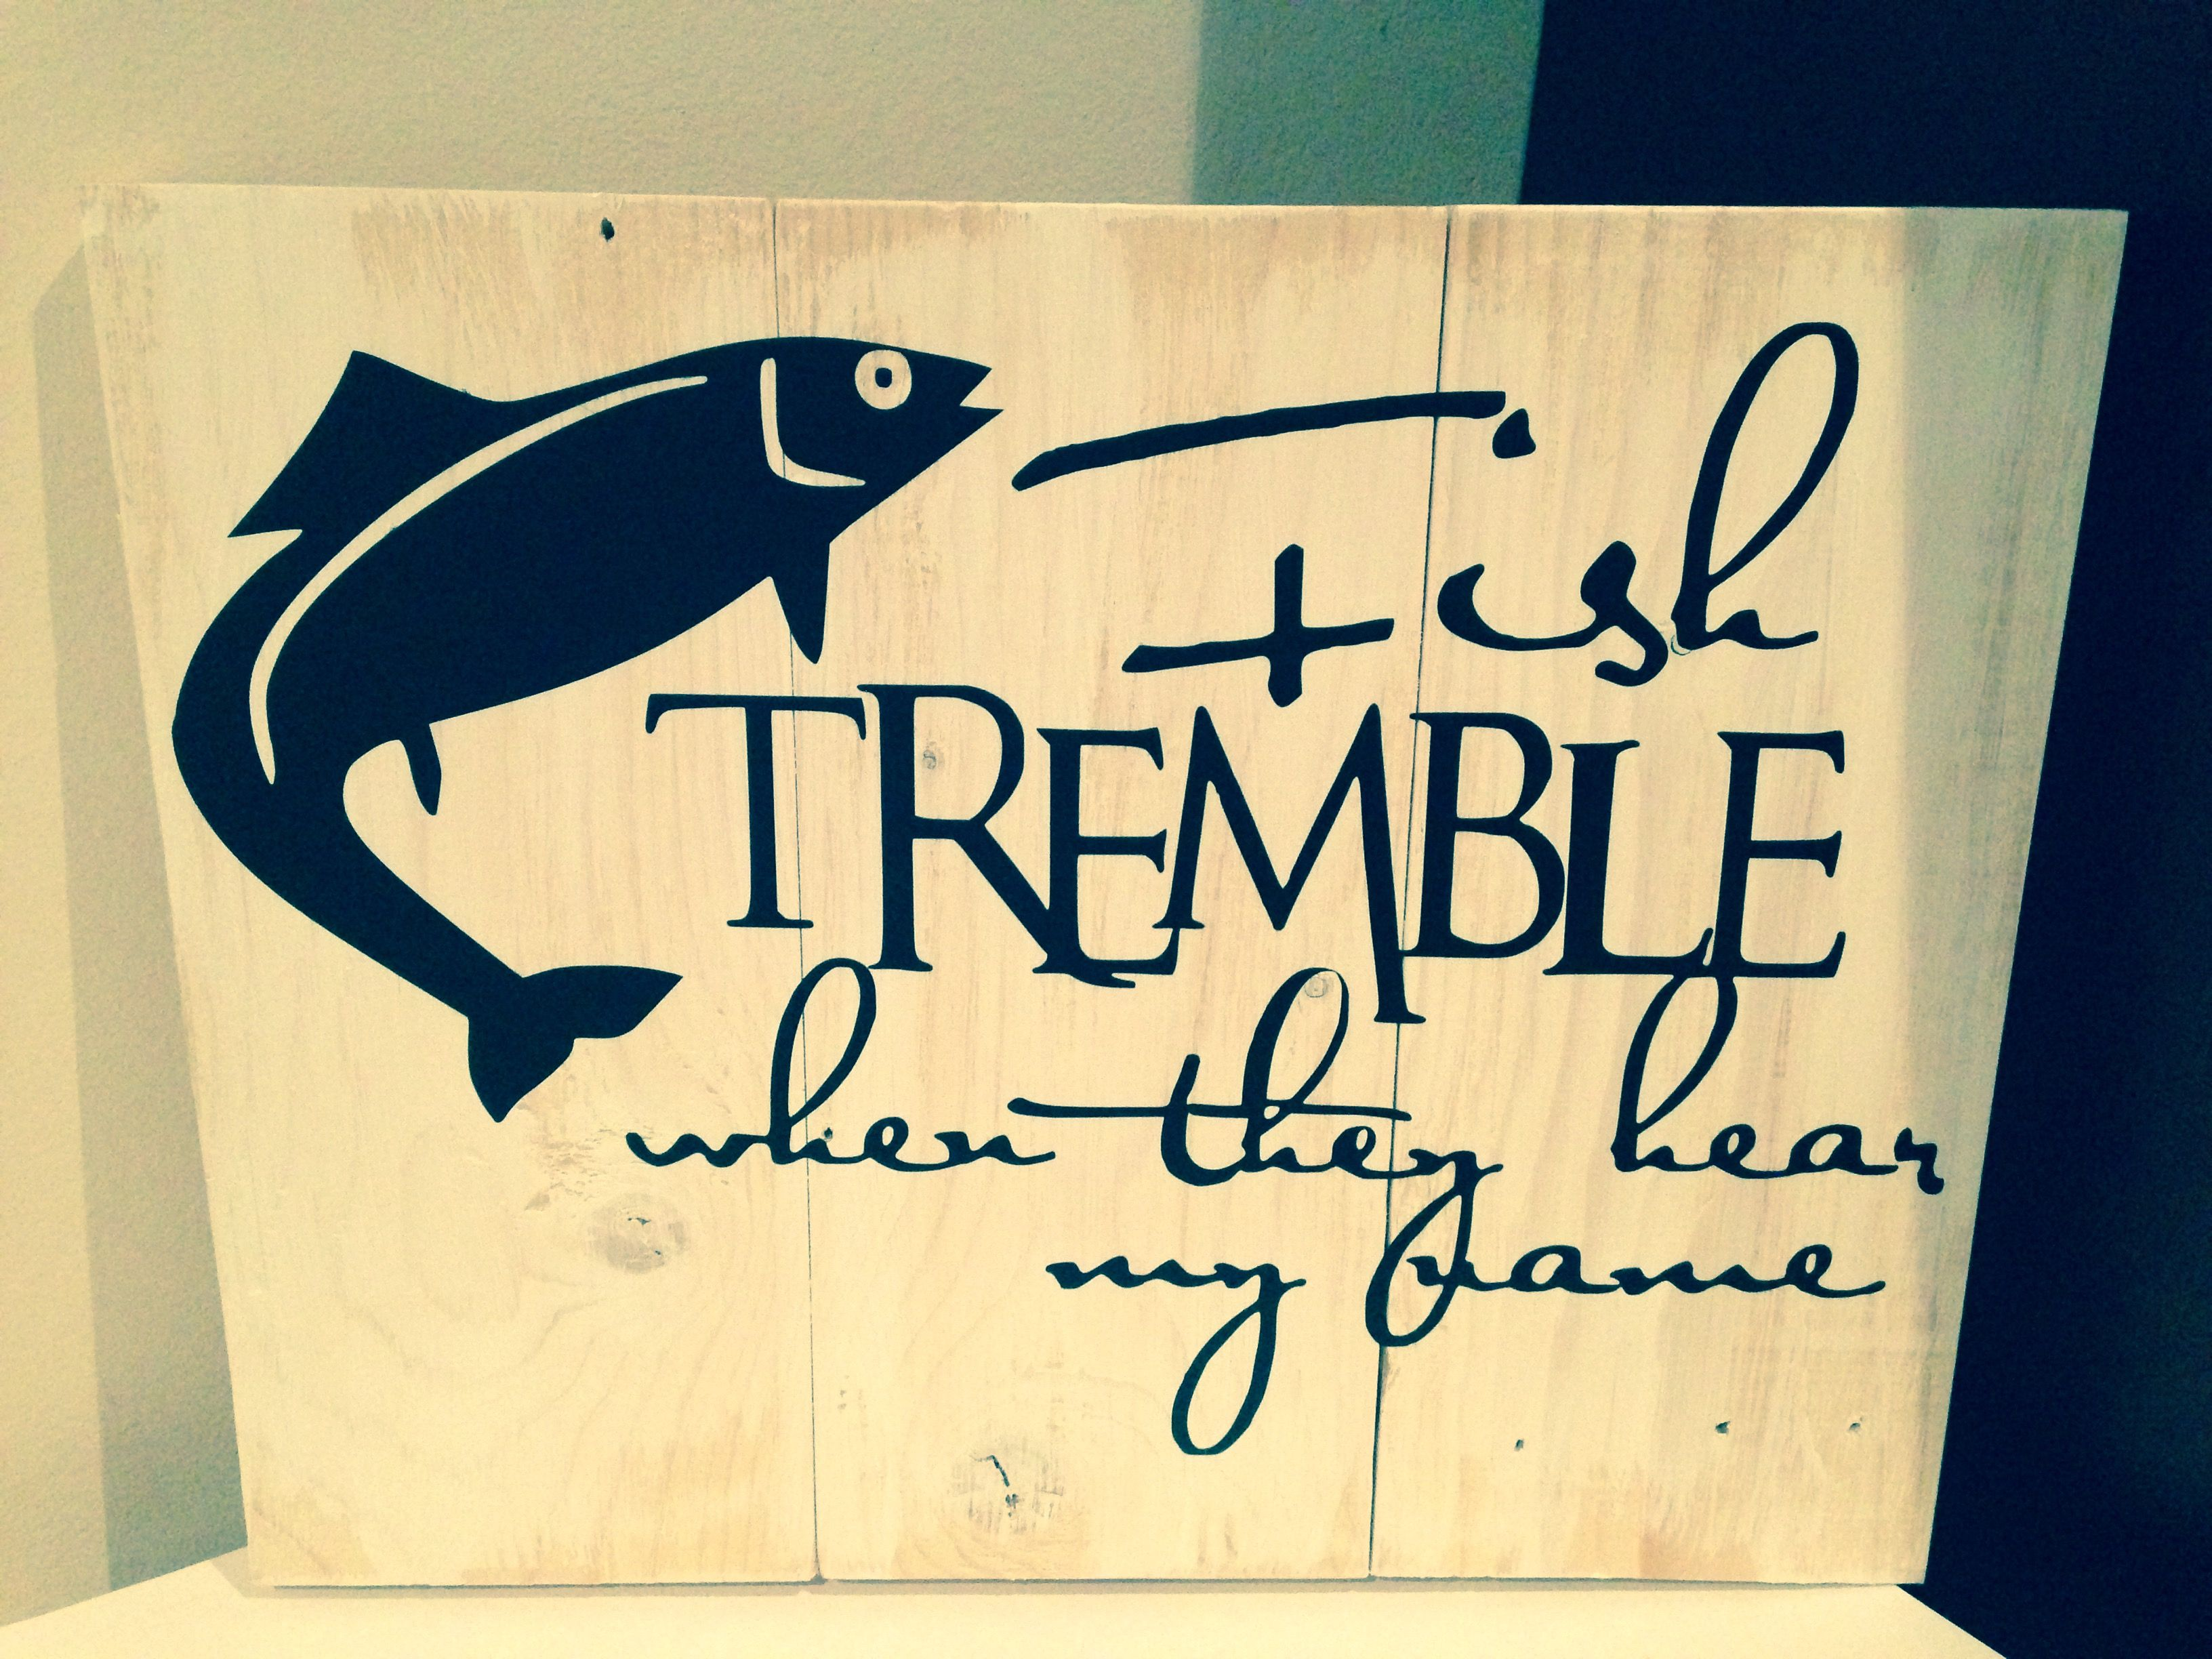 Pin by Phatwarren crafts on Wooden signs | Pinterest | Wall writing ...